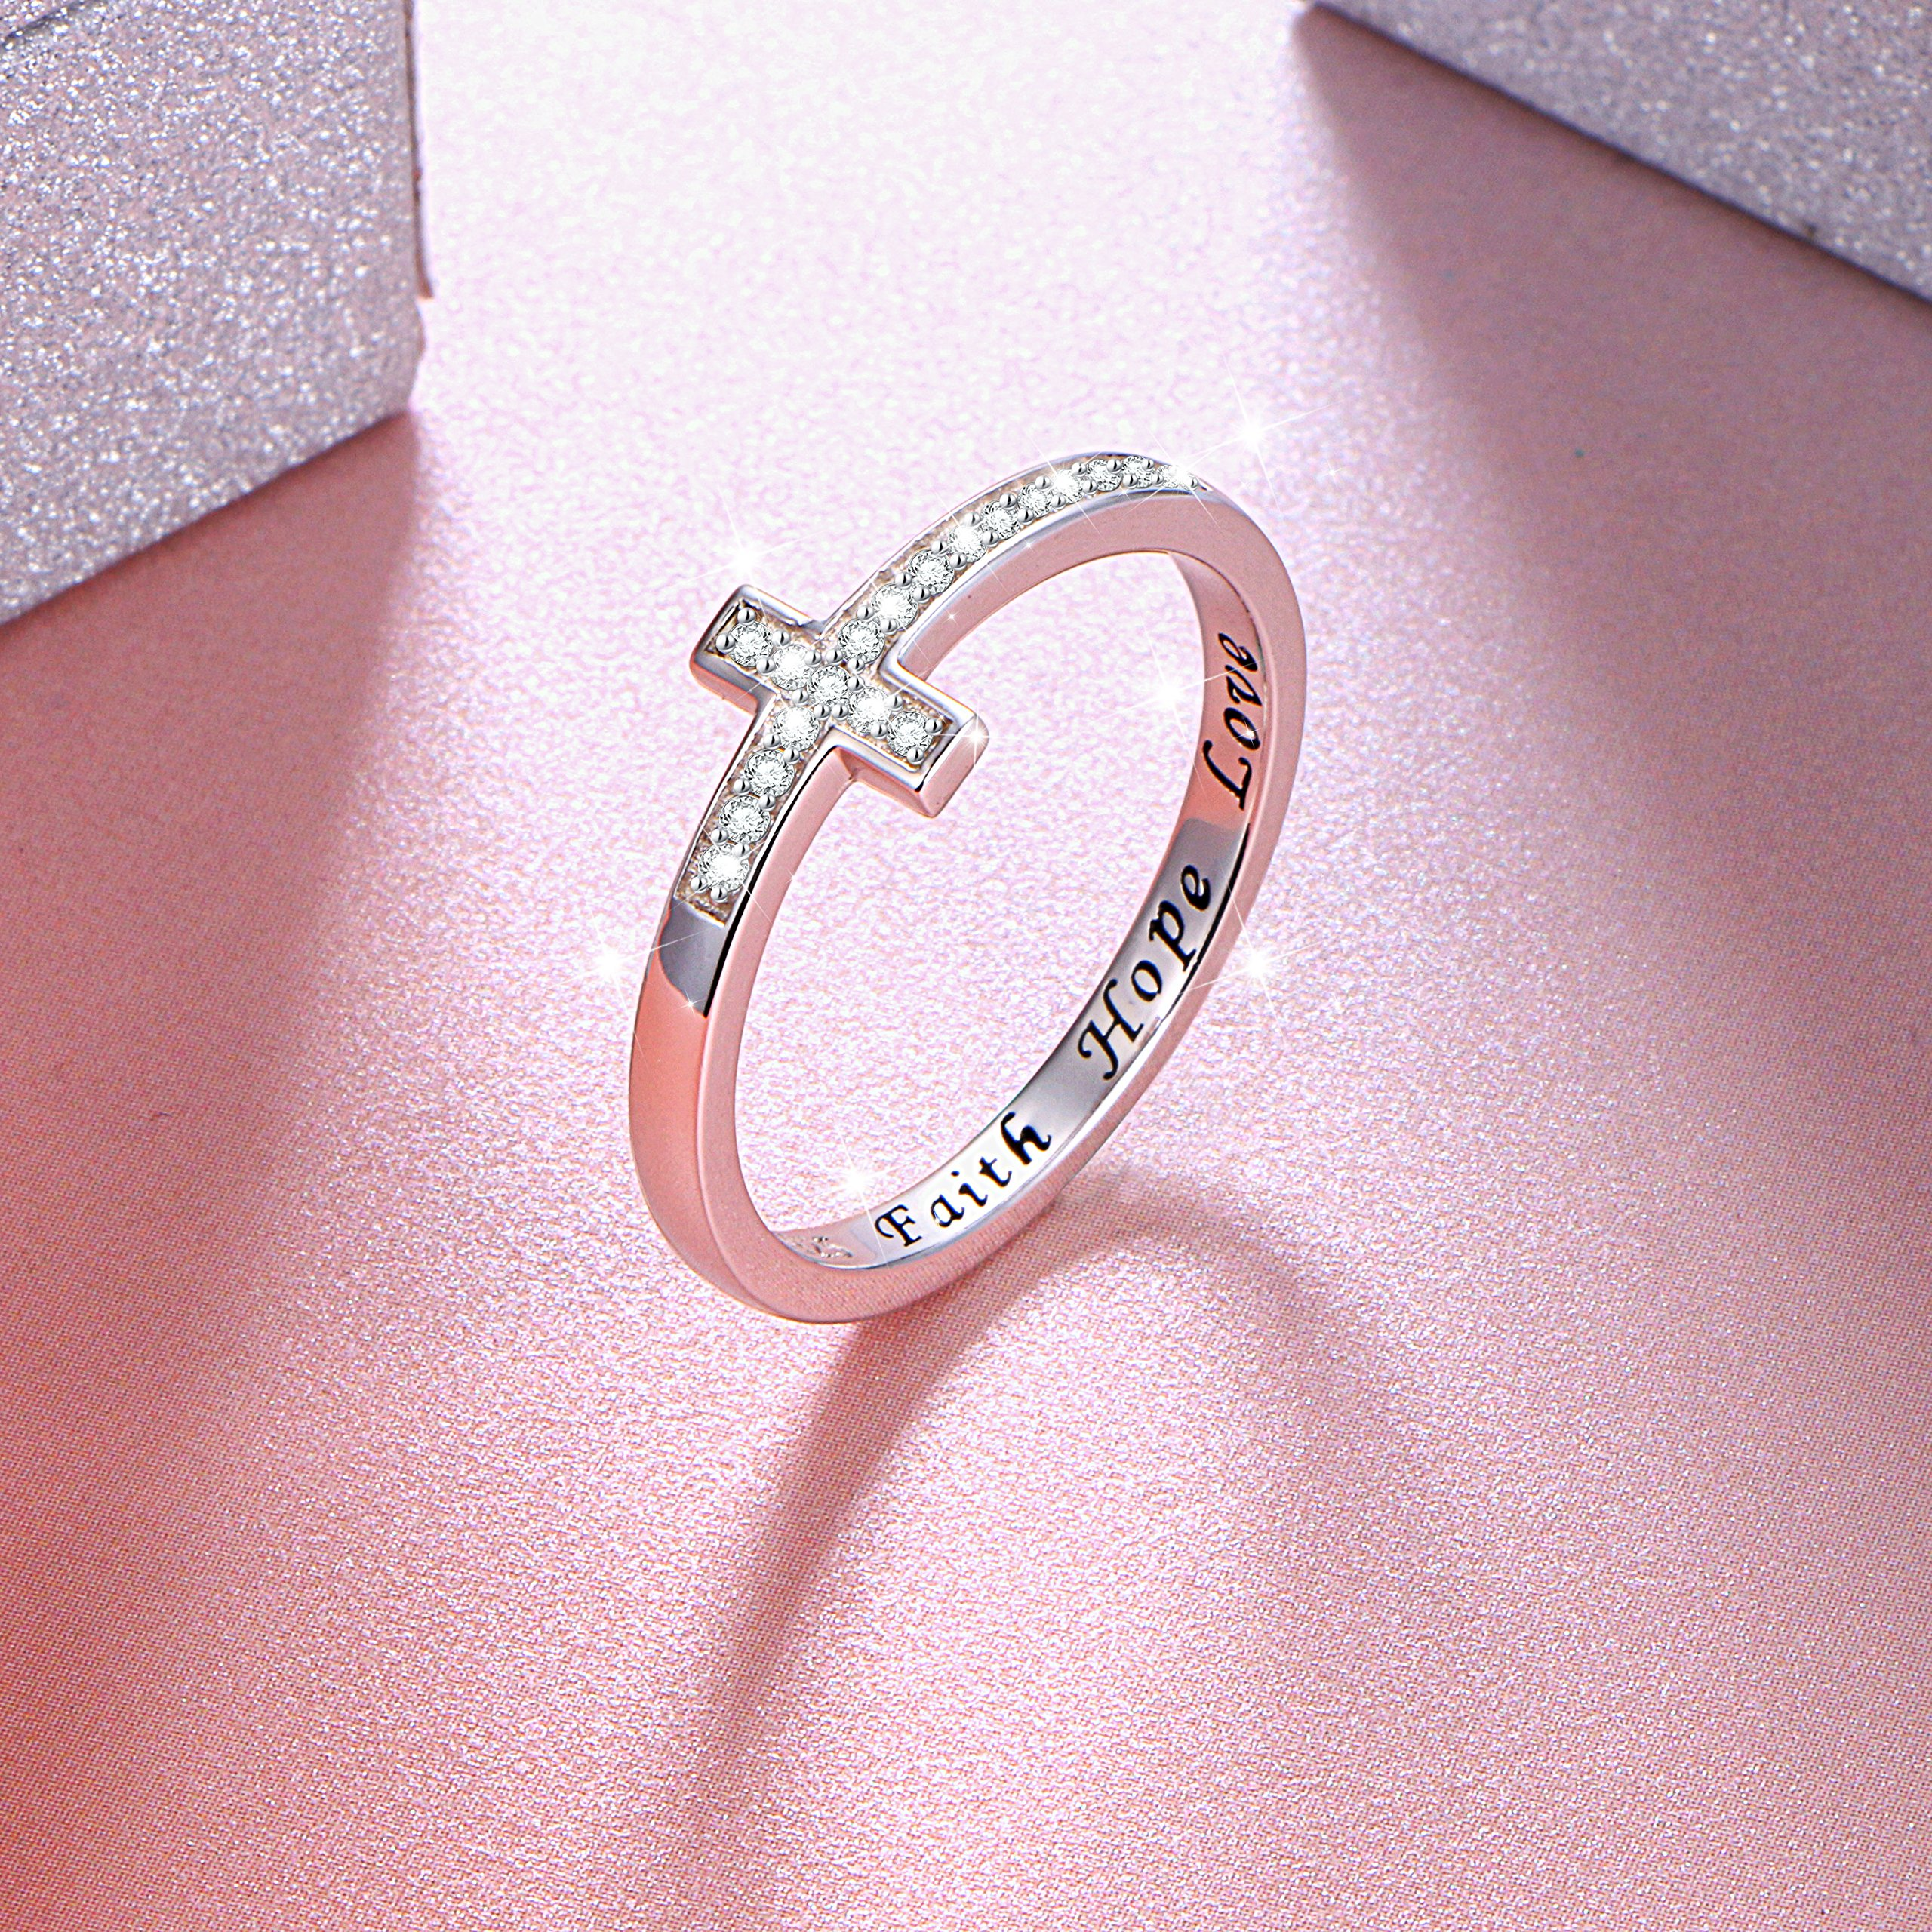 DAOCHONG Inspirational Jewelry Sterling Silver Engraved Faith Hope Love Sideway Cross Ring, Size 6 7 8 (8) by DAOCHONG (Image #3)